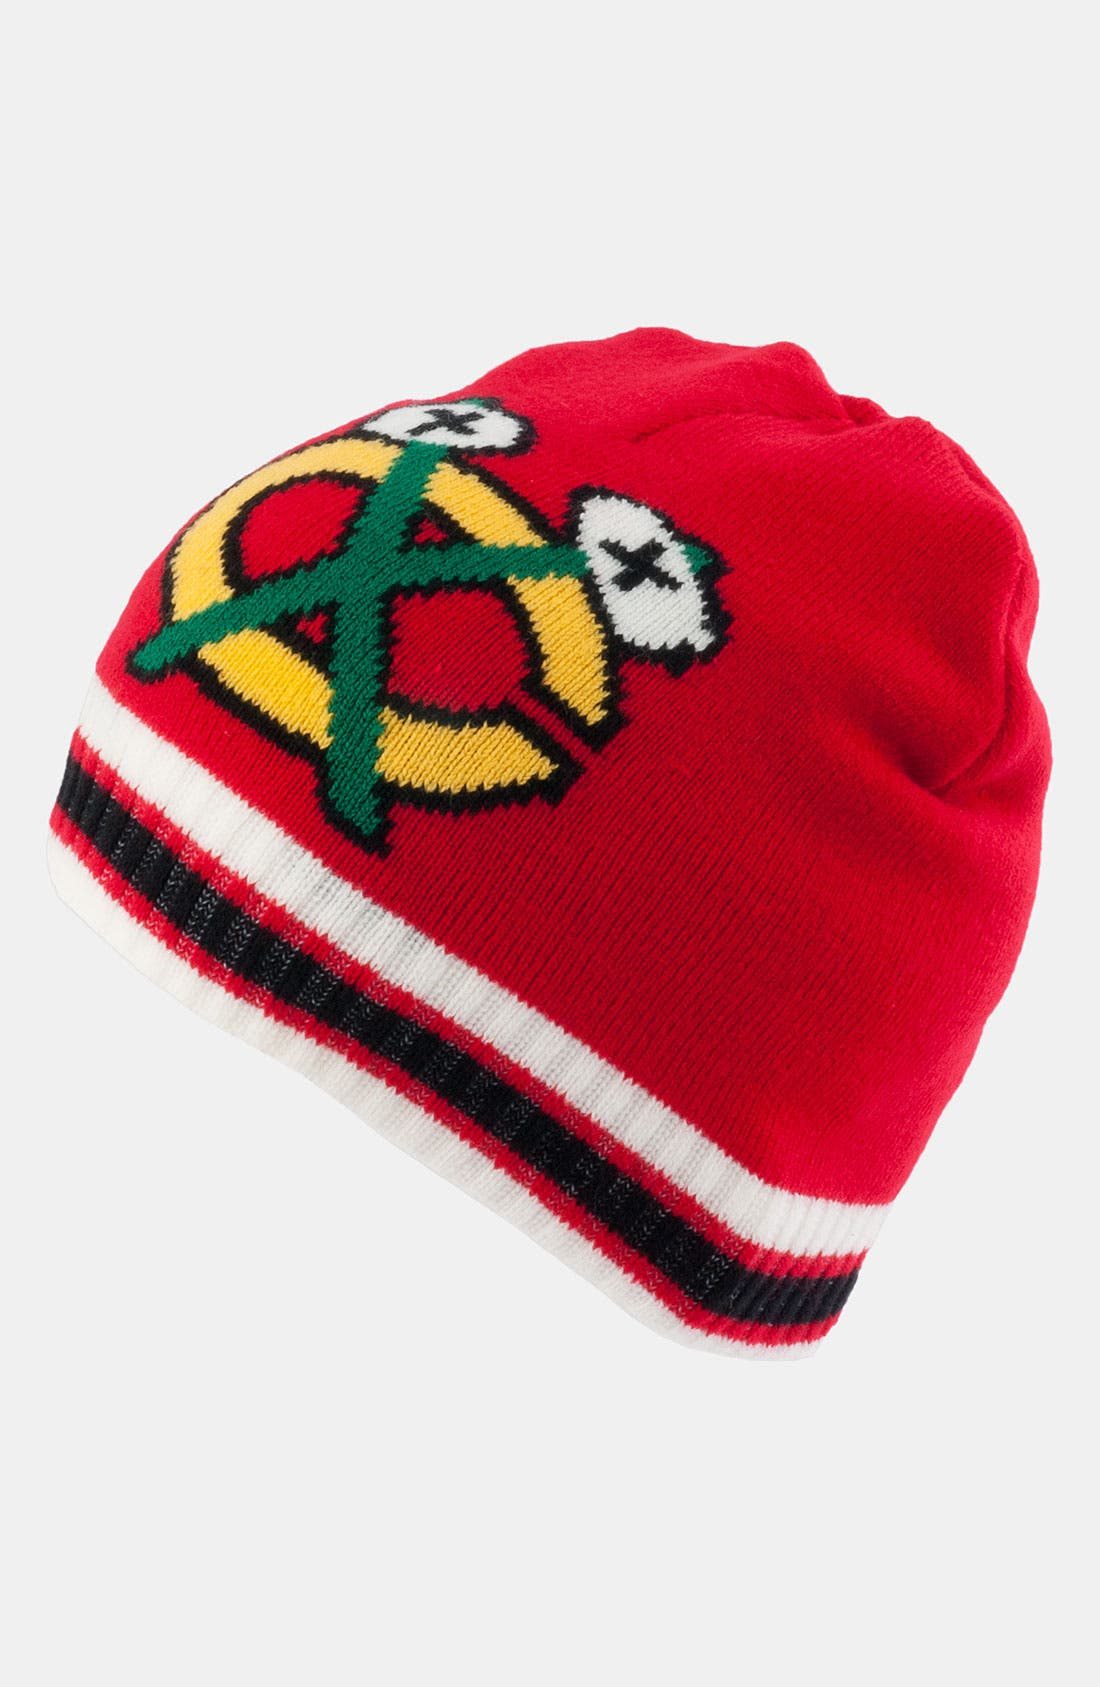 Alternate Image 1 Selected - American Needle 'Chicago Blackhawks - Right Wing' Knit Hat